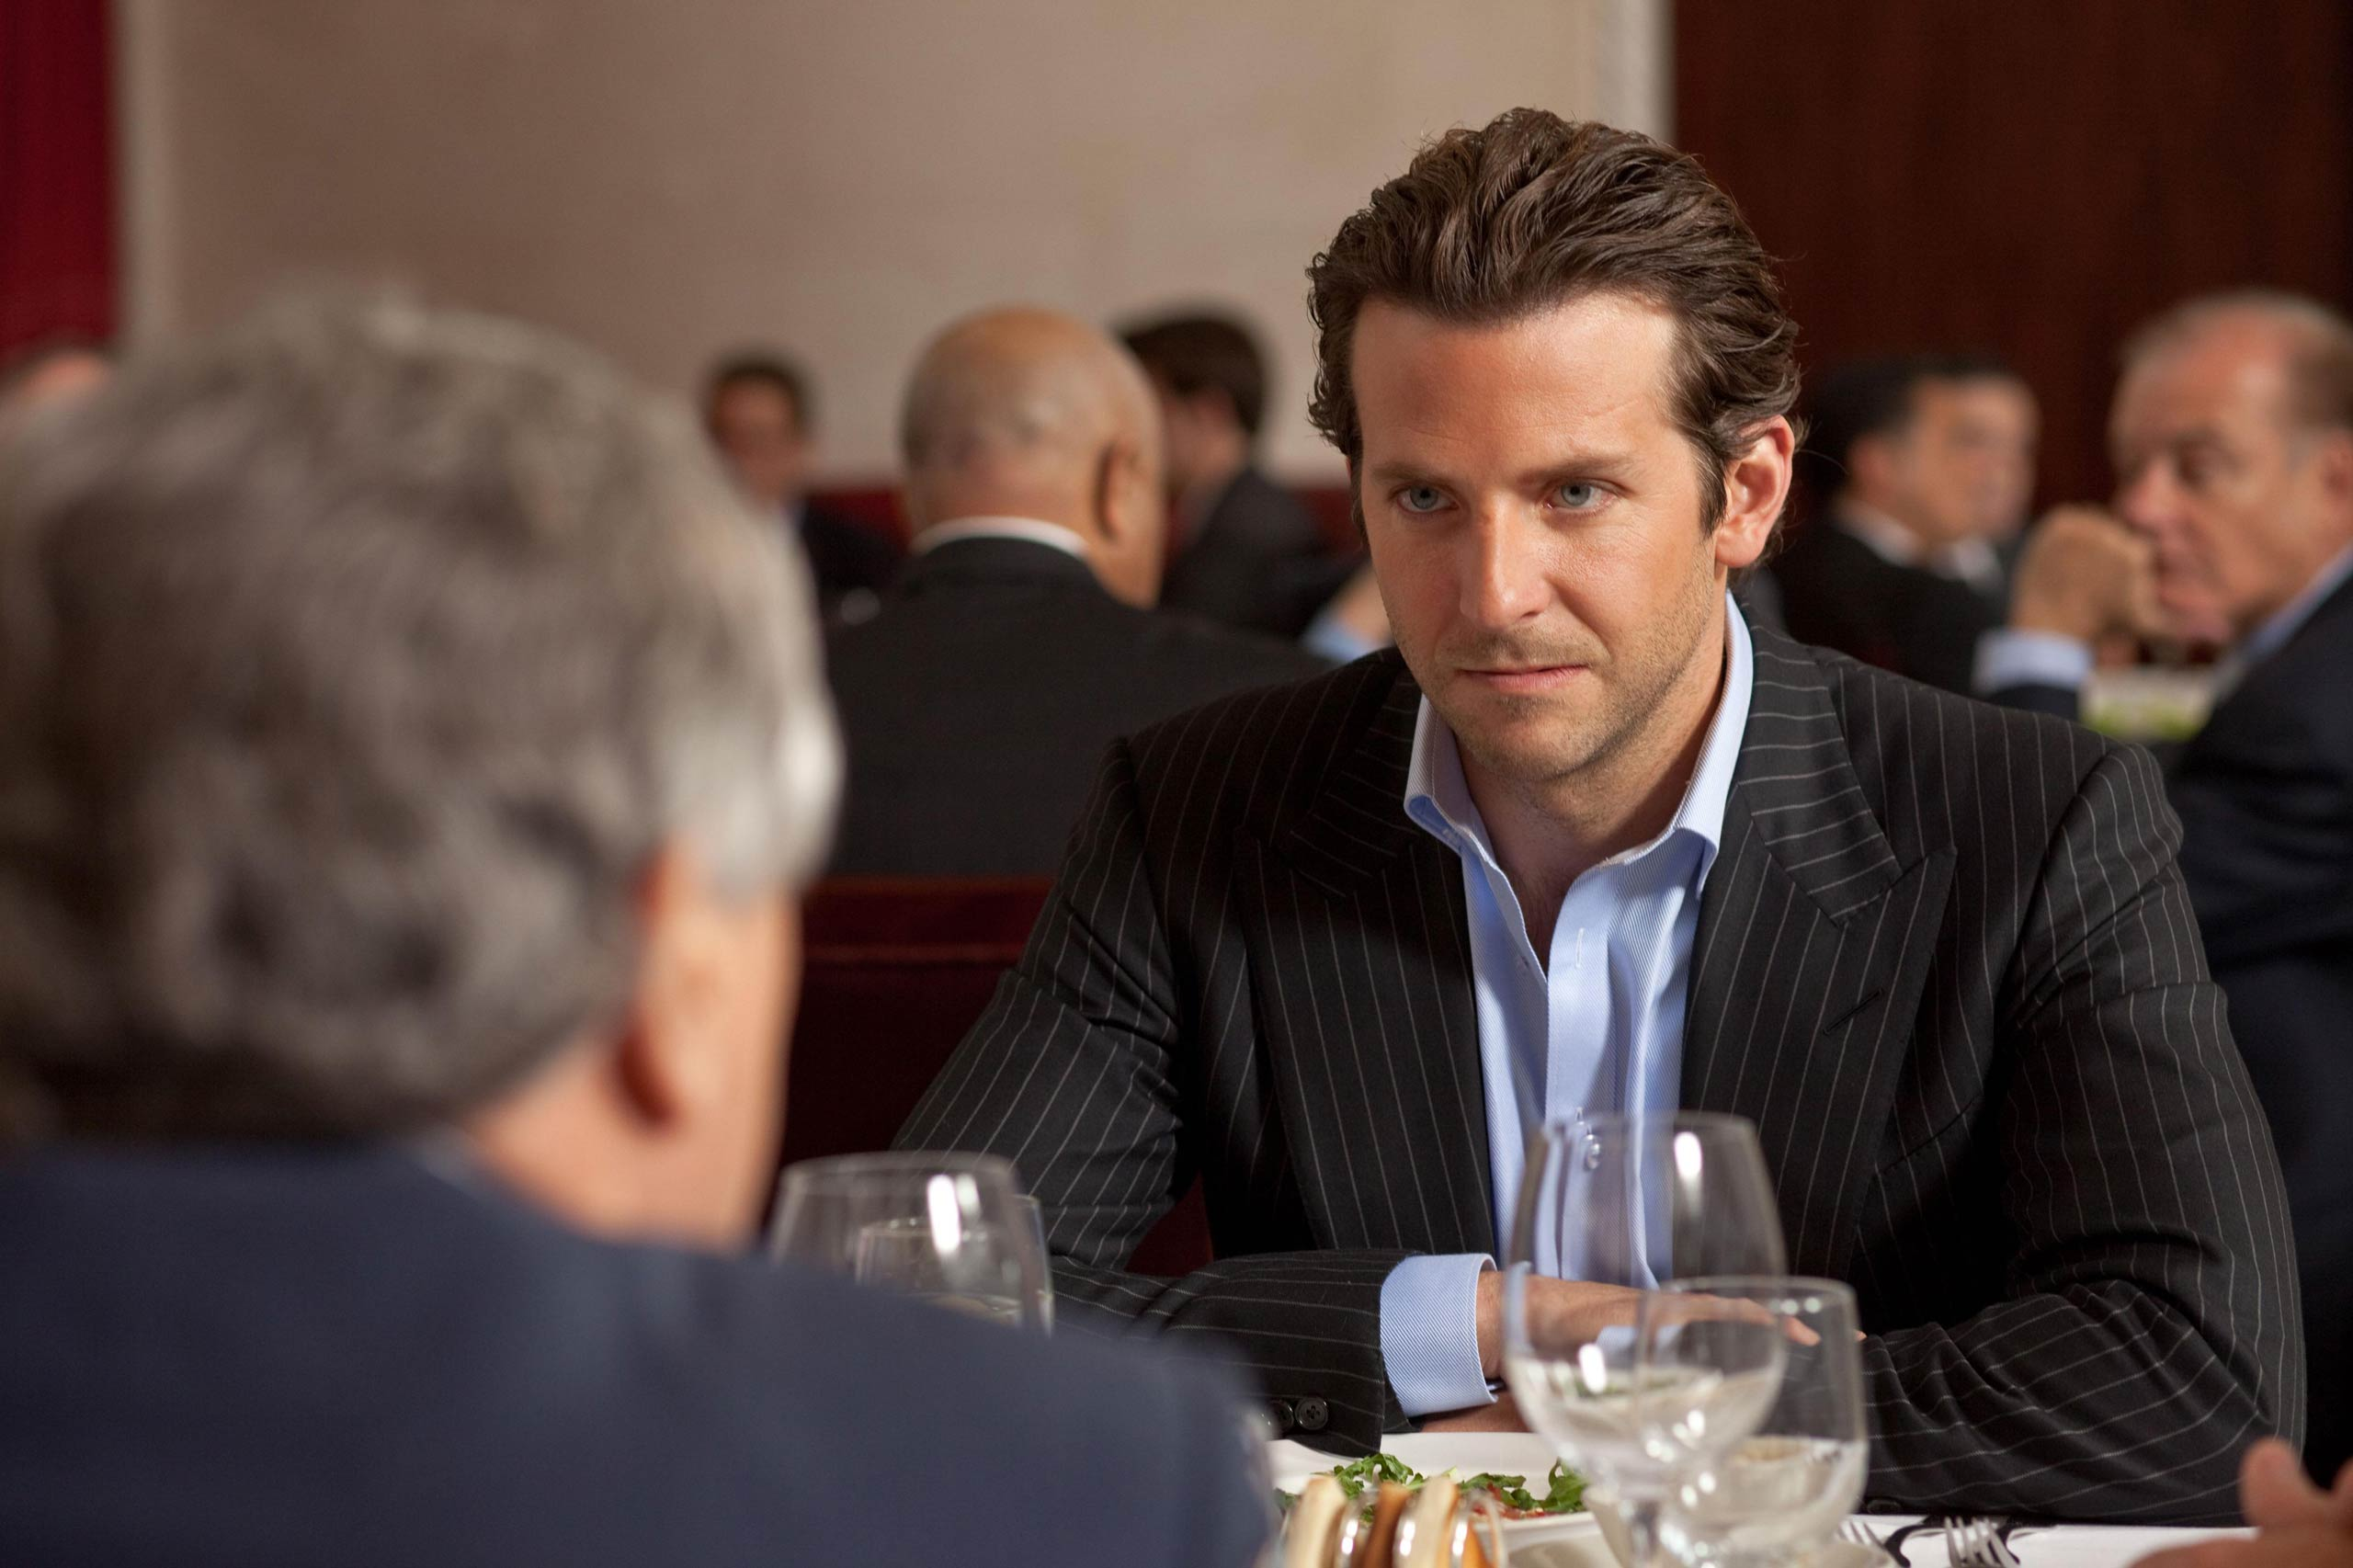 <strong><i>Limitless</i> (CBS)</strong>                                                                      Bradley Cooper, who starred in the action film, will executive produce the <i>Limitless</i> TV series about a writer who is able to access 100% of his brain on a mysterious drug called NZT.